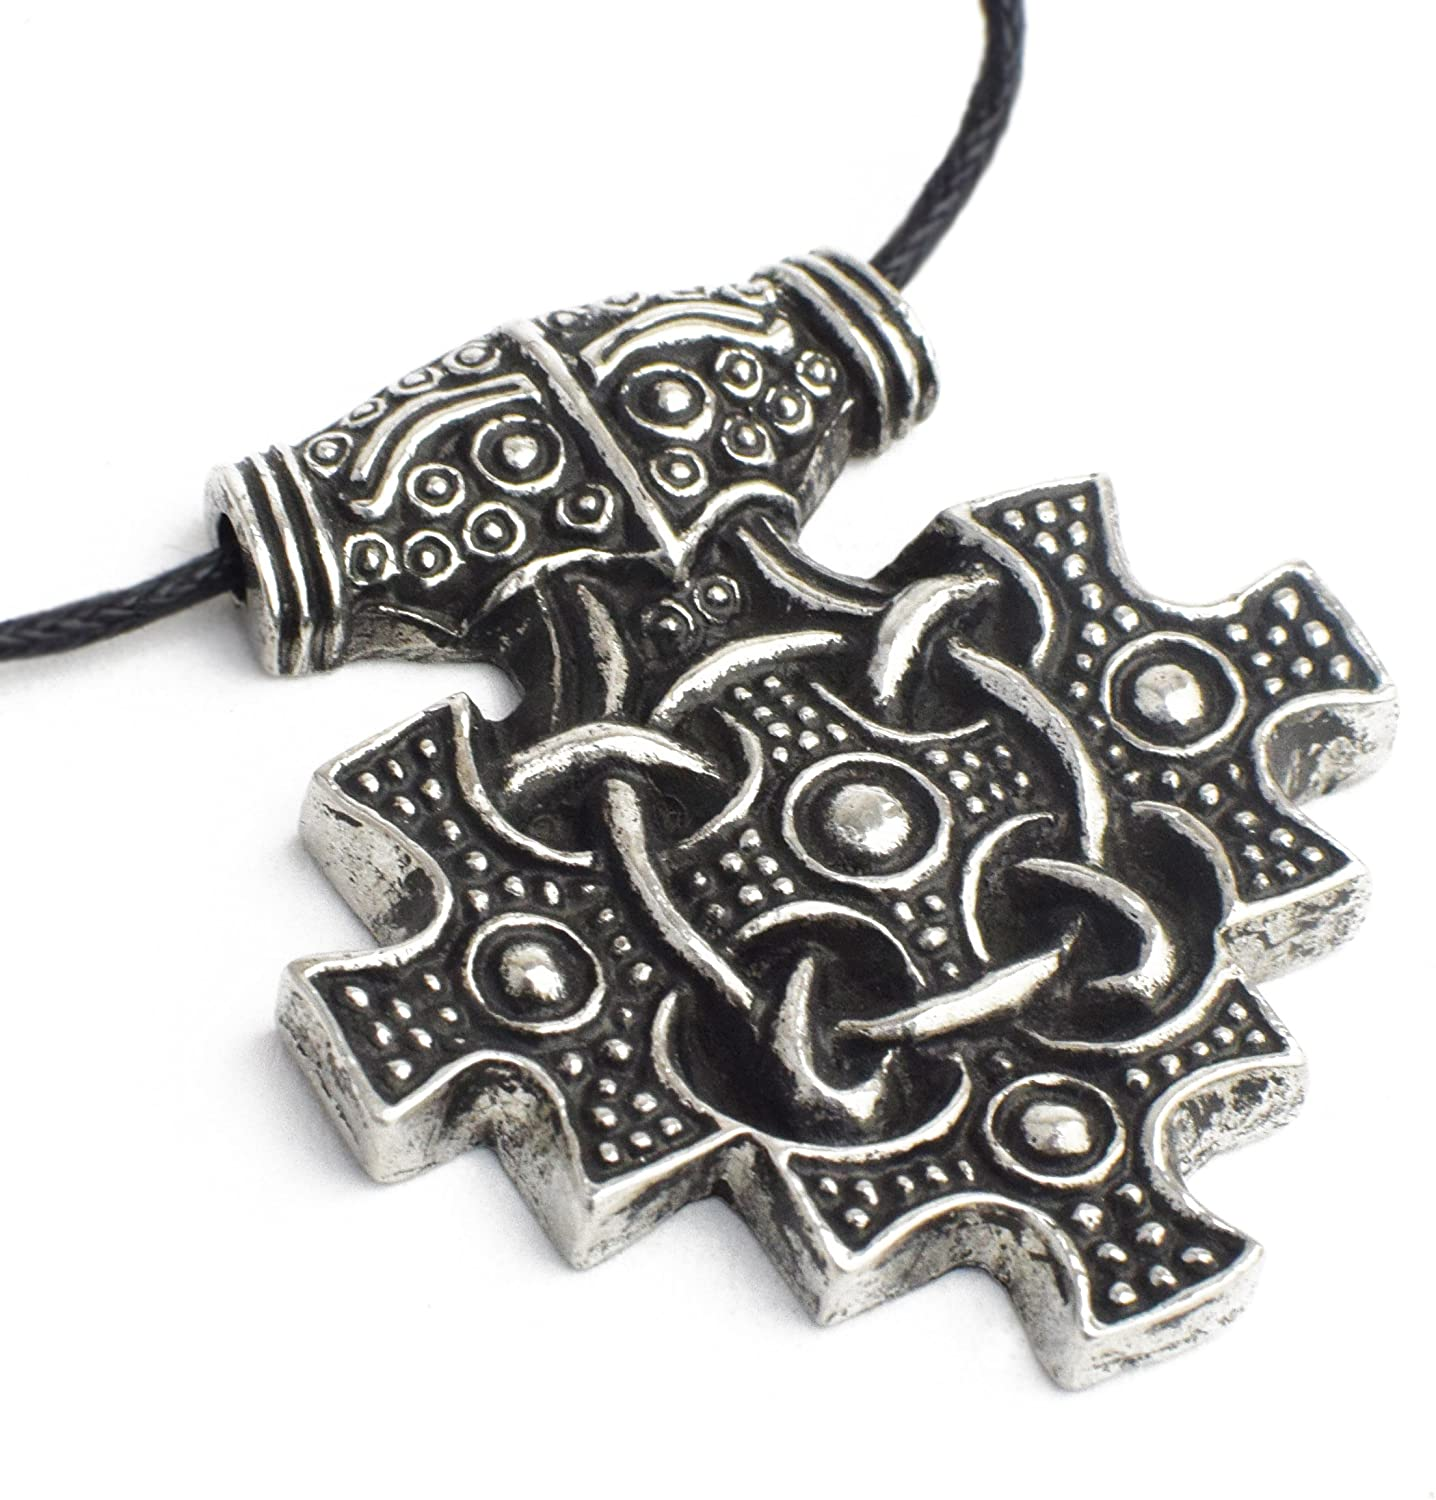 Asgard York Hiddensee Thors Hammer Mjolnir Norse Viking Pendant @ Sons of Odin™ - Men's Jewelry on